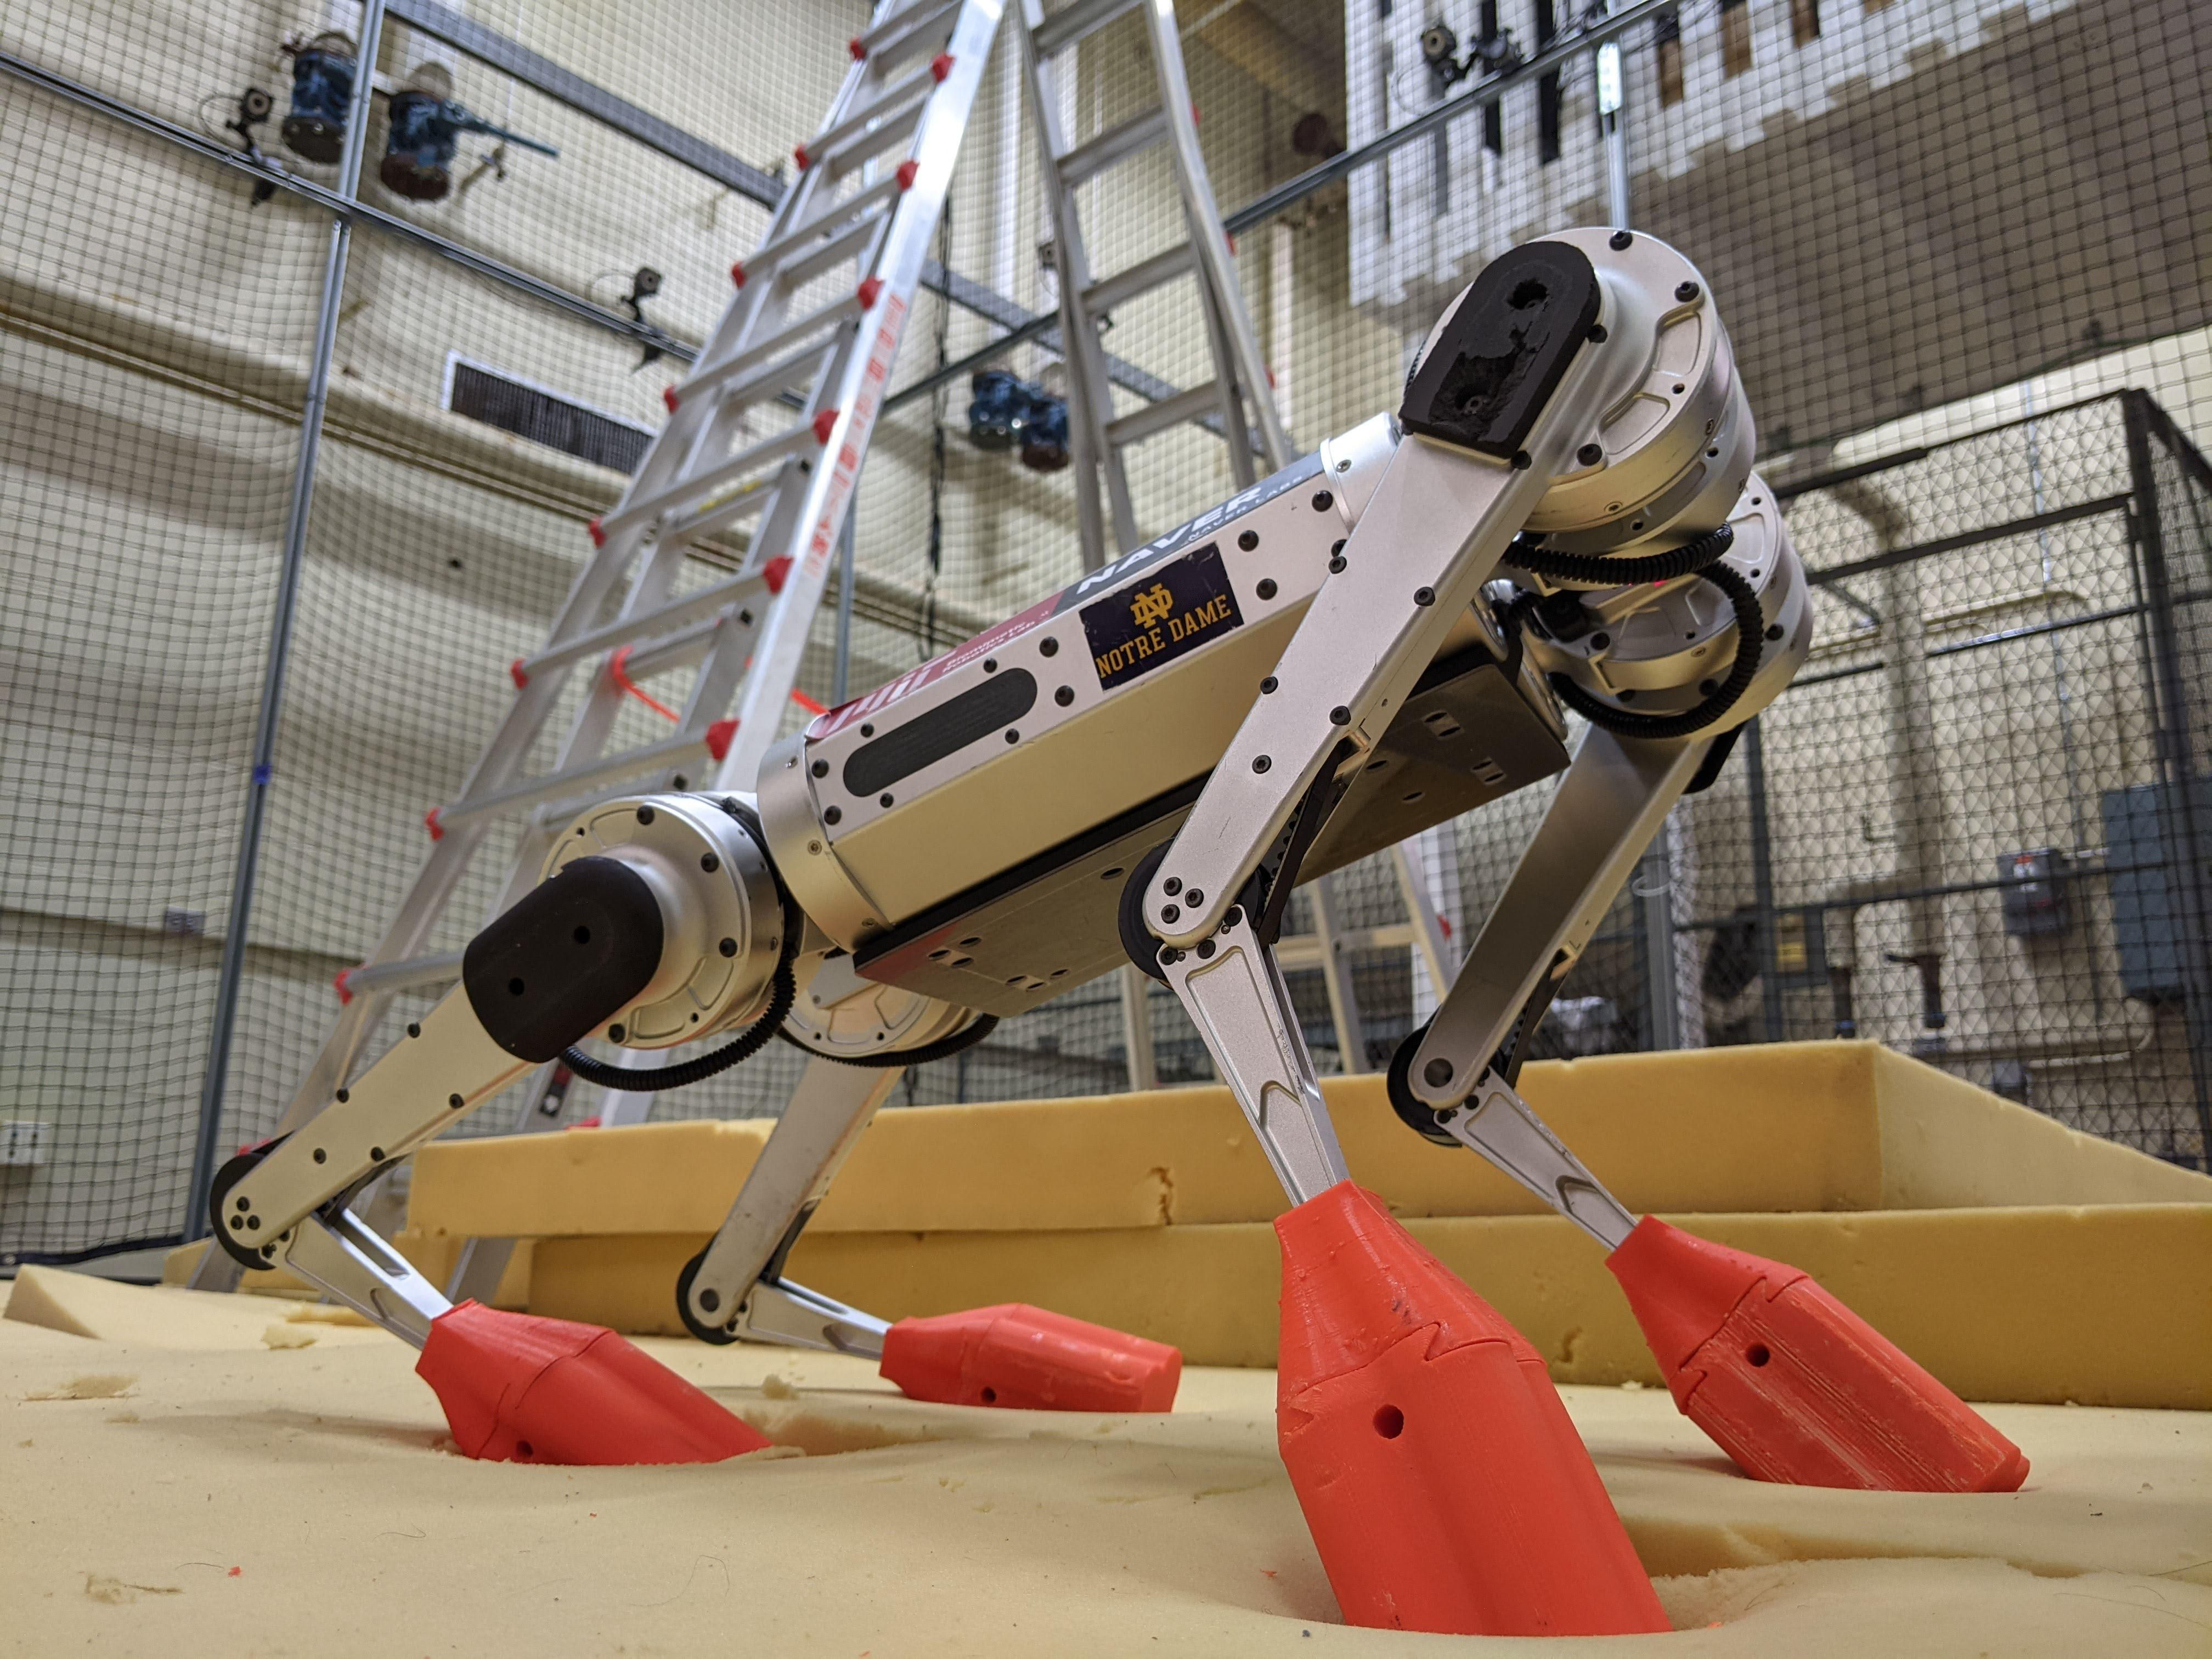 Wide angle close up picture of a silver quadrupedal robot with red 3D printed boots standing on a foam pad with a ladder in the background